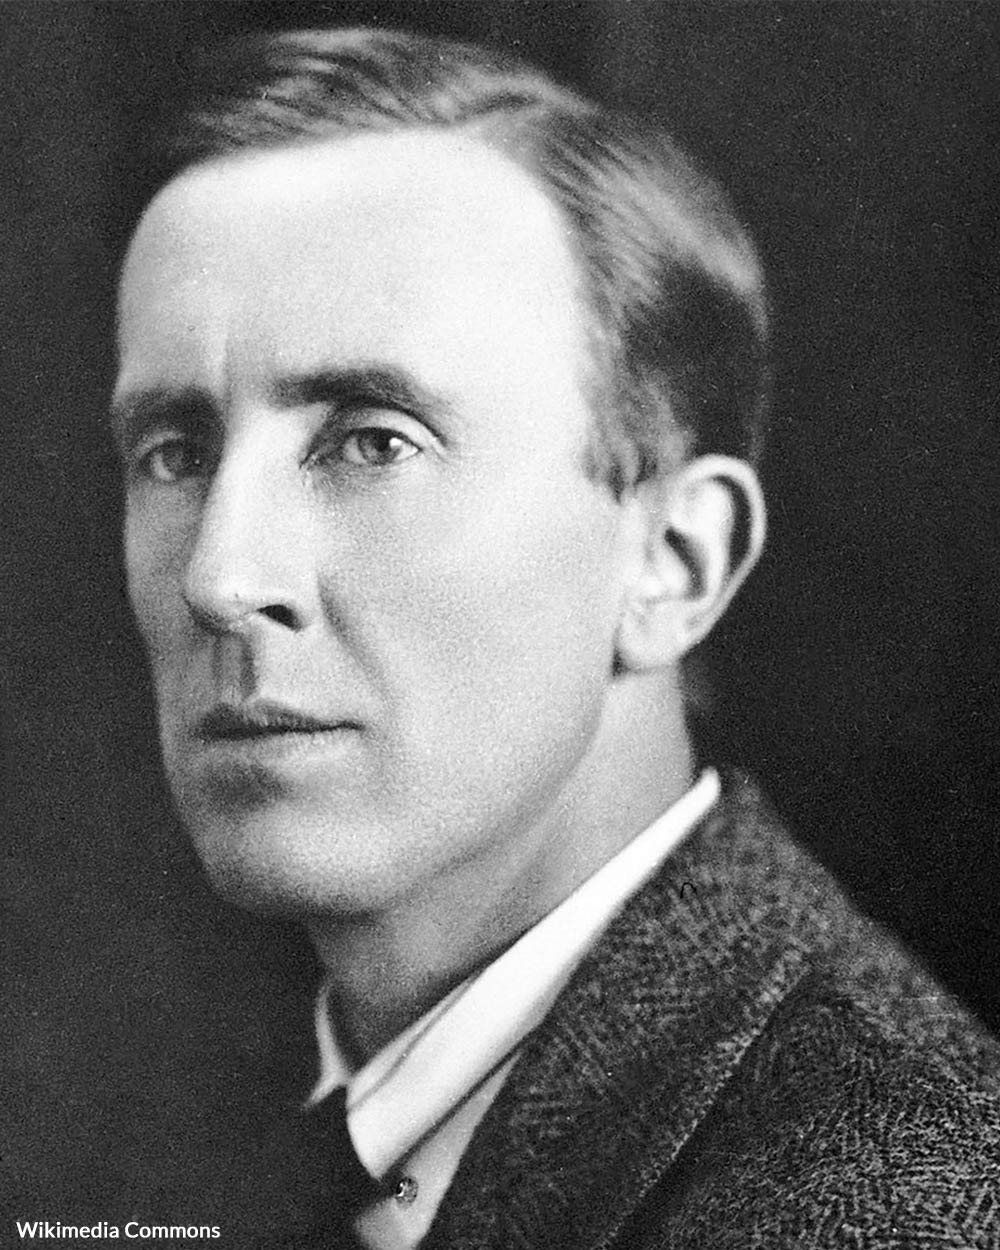 J.R.R. Tolkien in the 1940s.